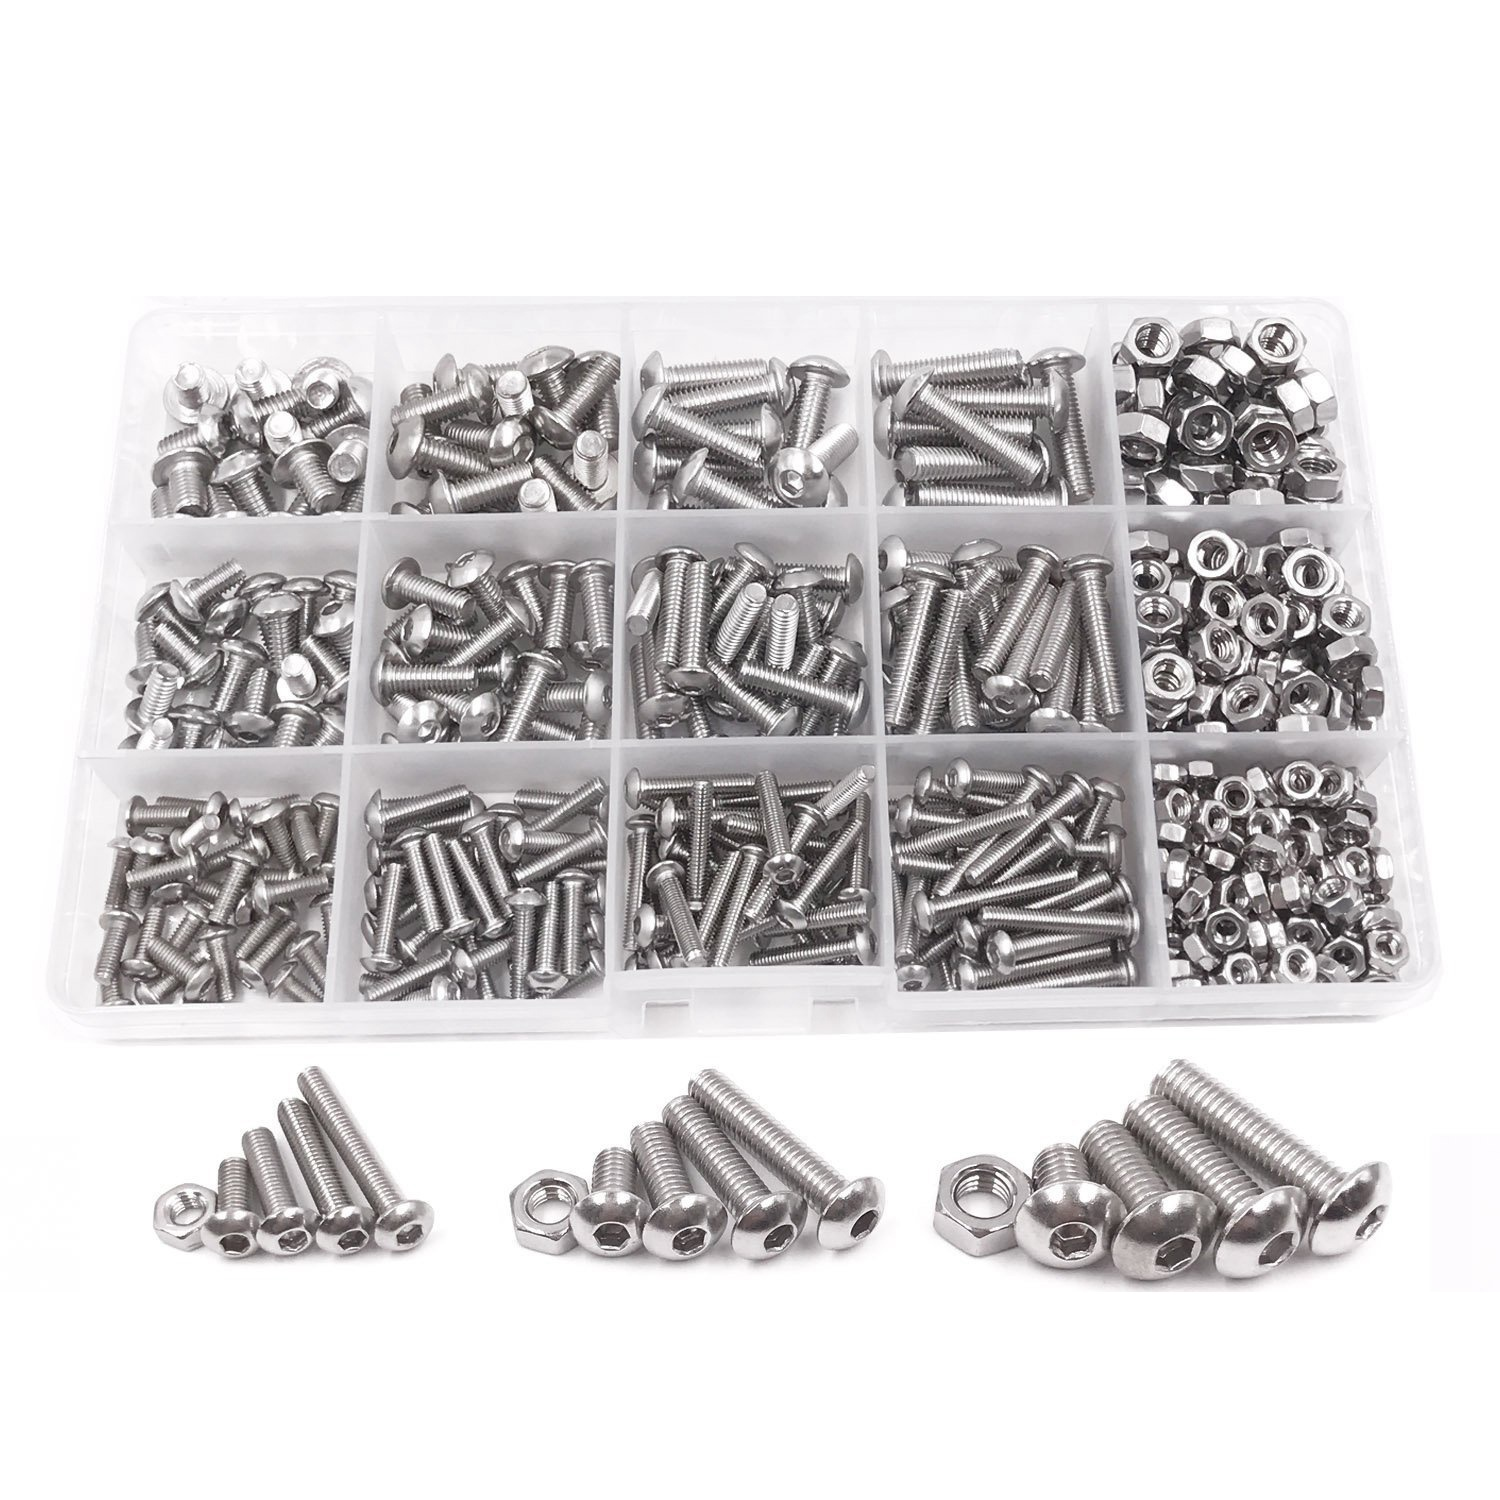 500pcs M3 M4 M5 A2 Stainless Steel ISO7380 Button Head Hex Bolts Hexagon Socket Screws With Nuts Assortment Kit Retail/ Hot